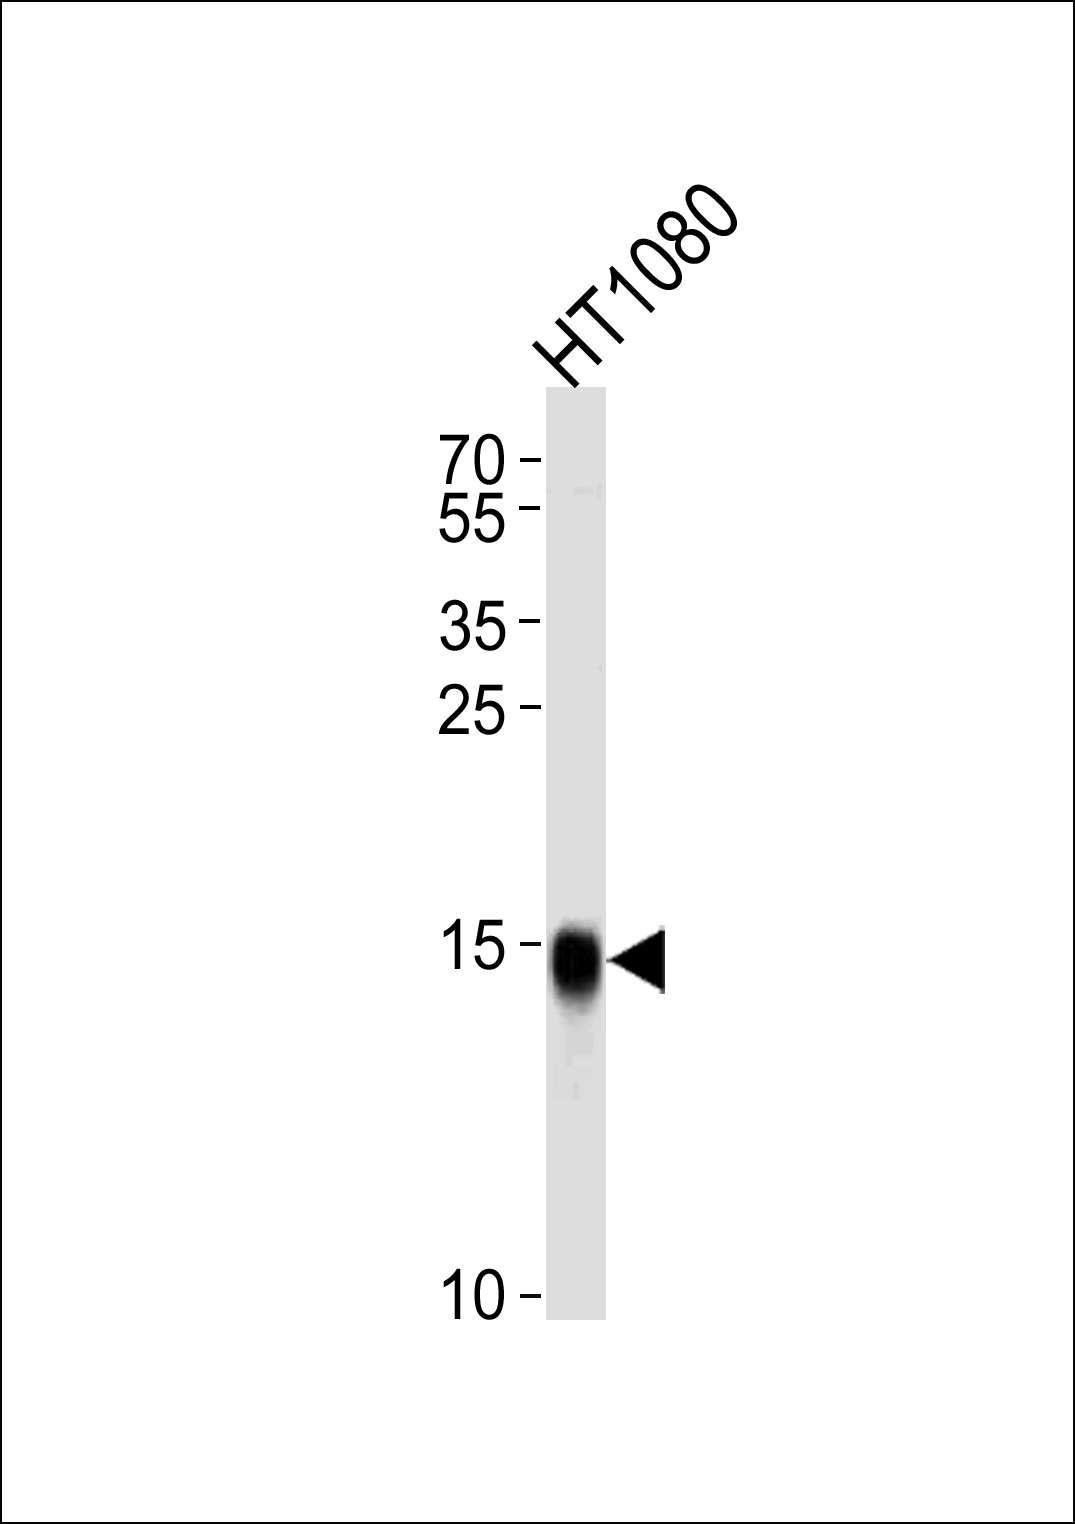 WB - Interferon-inducible protein (IFITM3) Antibody (N-term) AP1153a